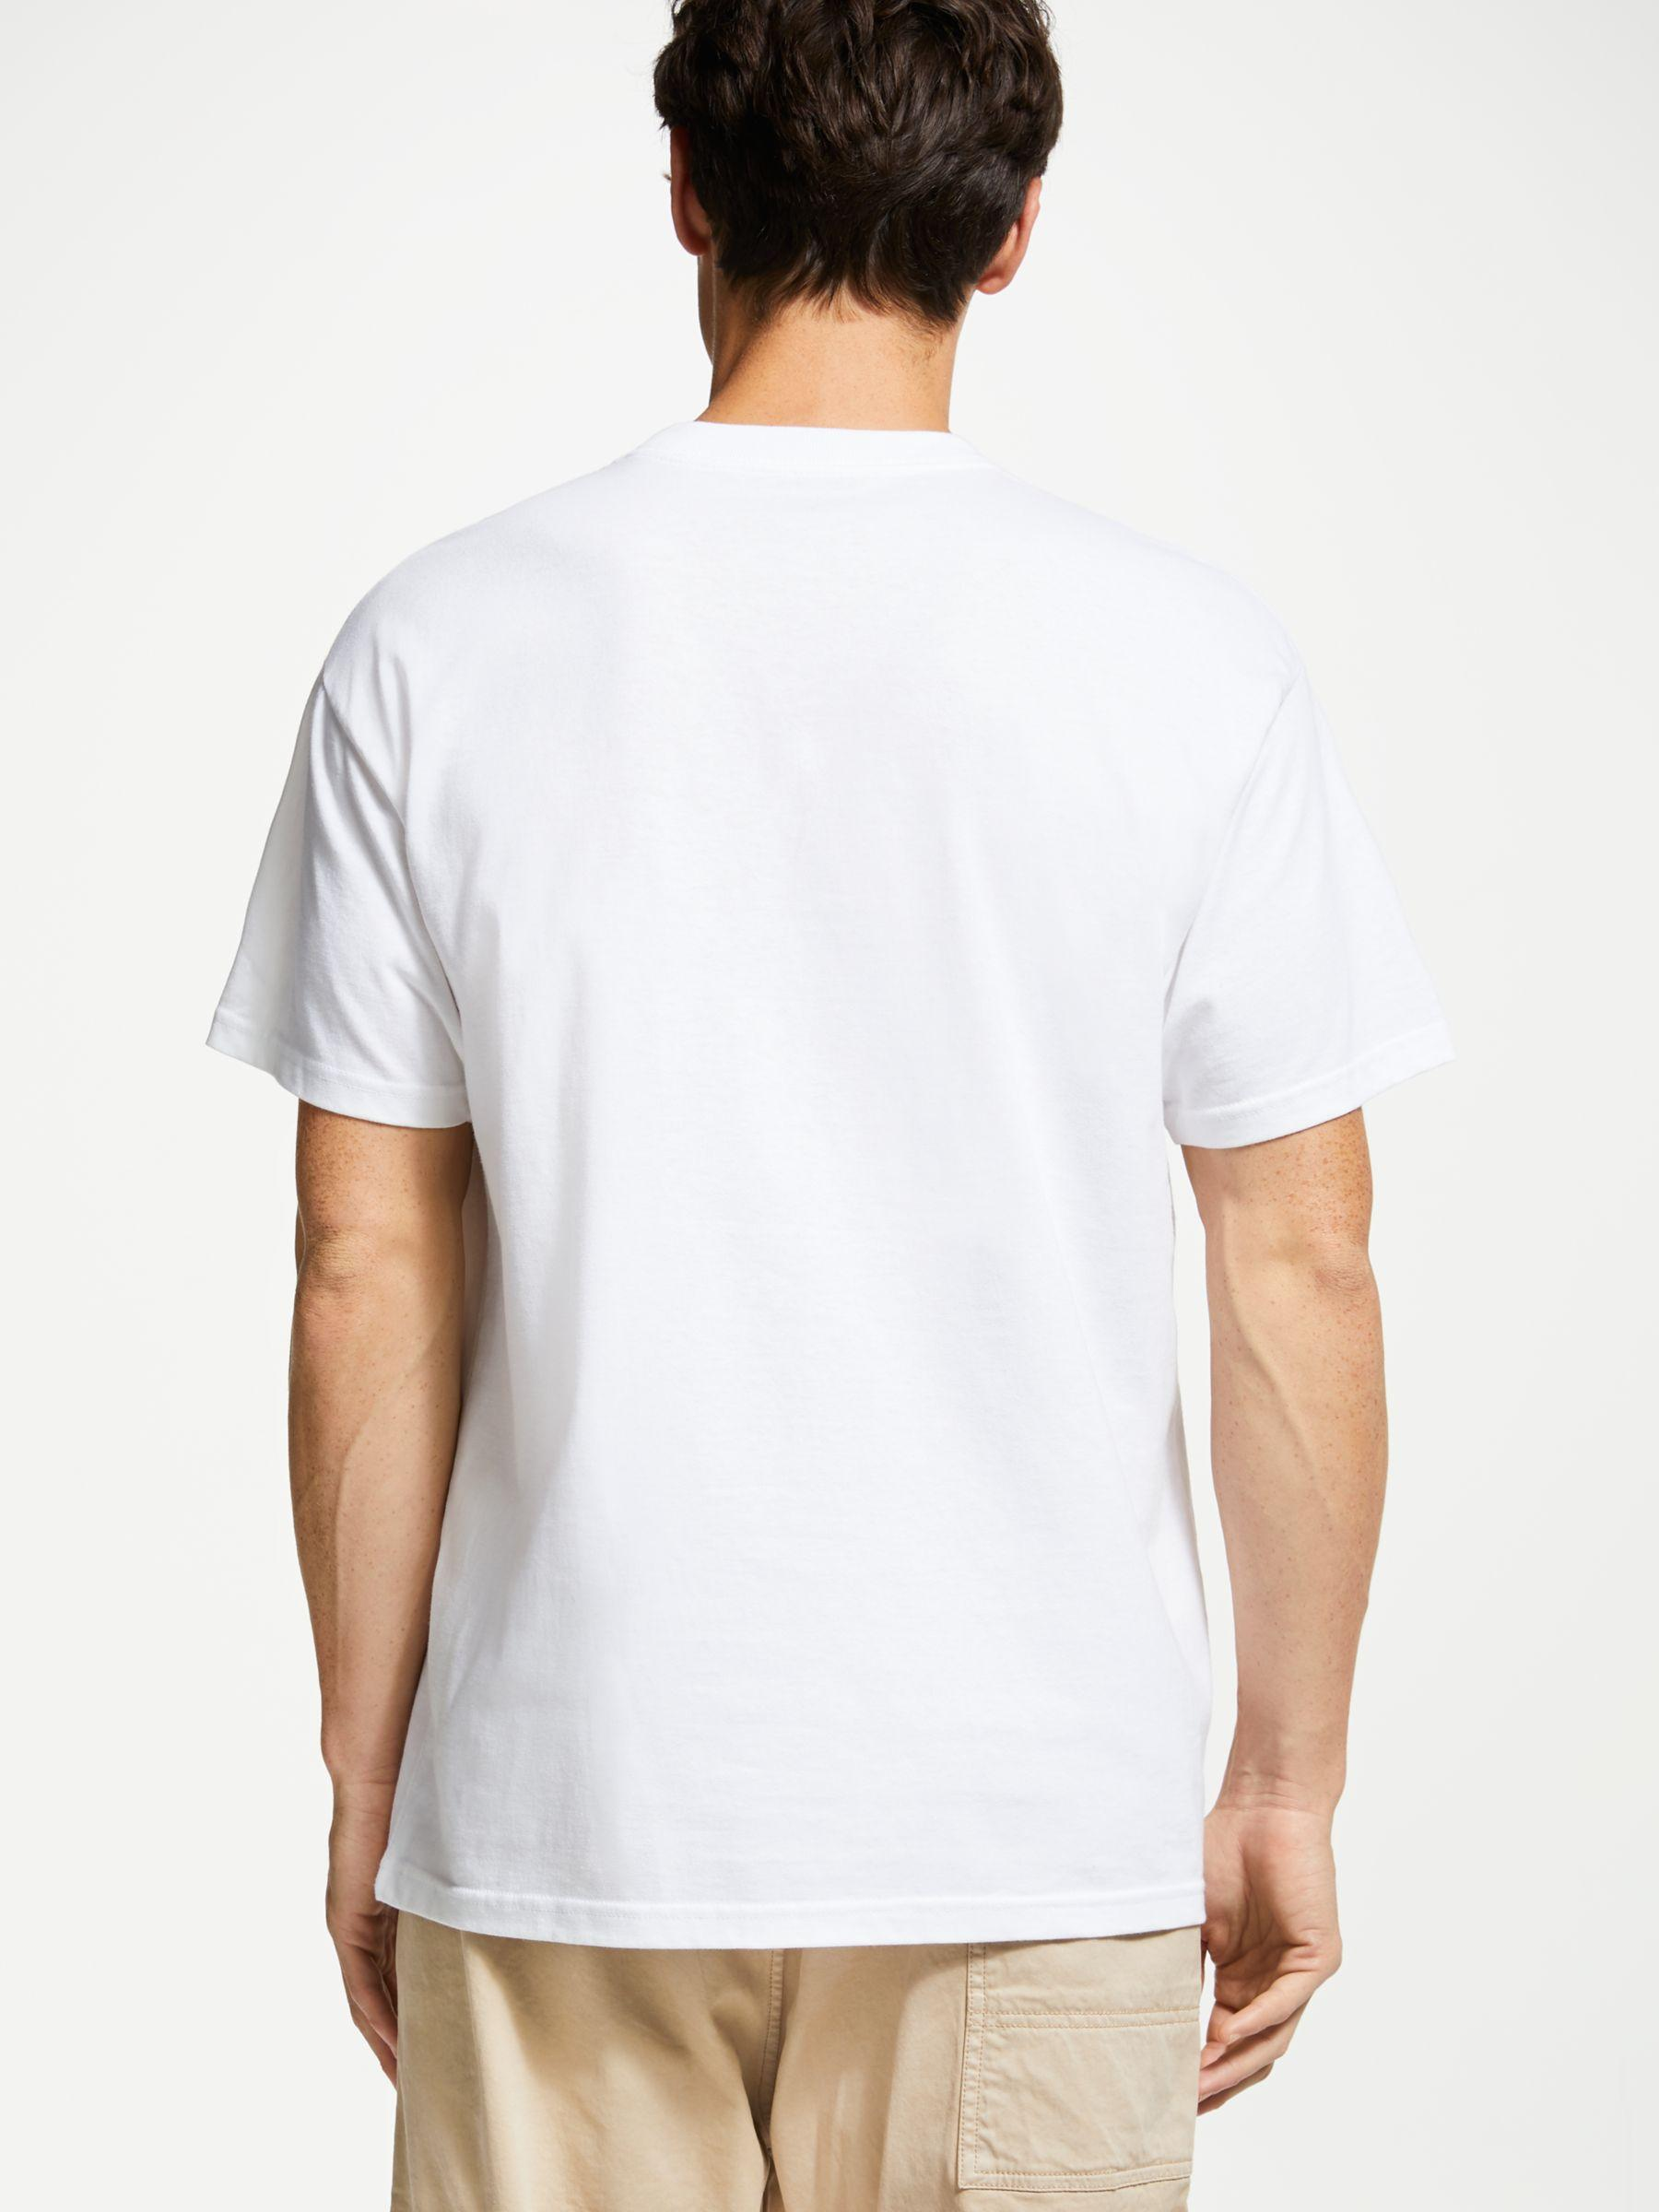 bfc7c7d82 Carhartt WIP Hud Short Sleeve Graphic T-shirt in White for Men - Lyst